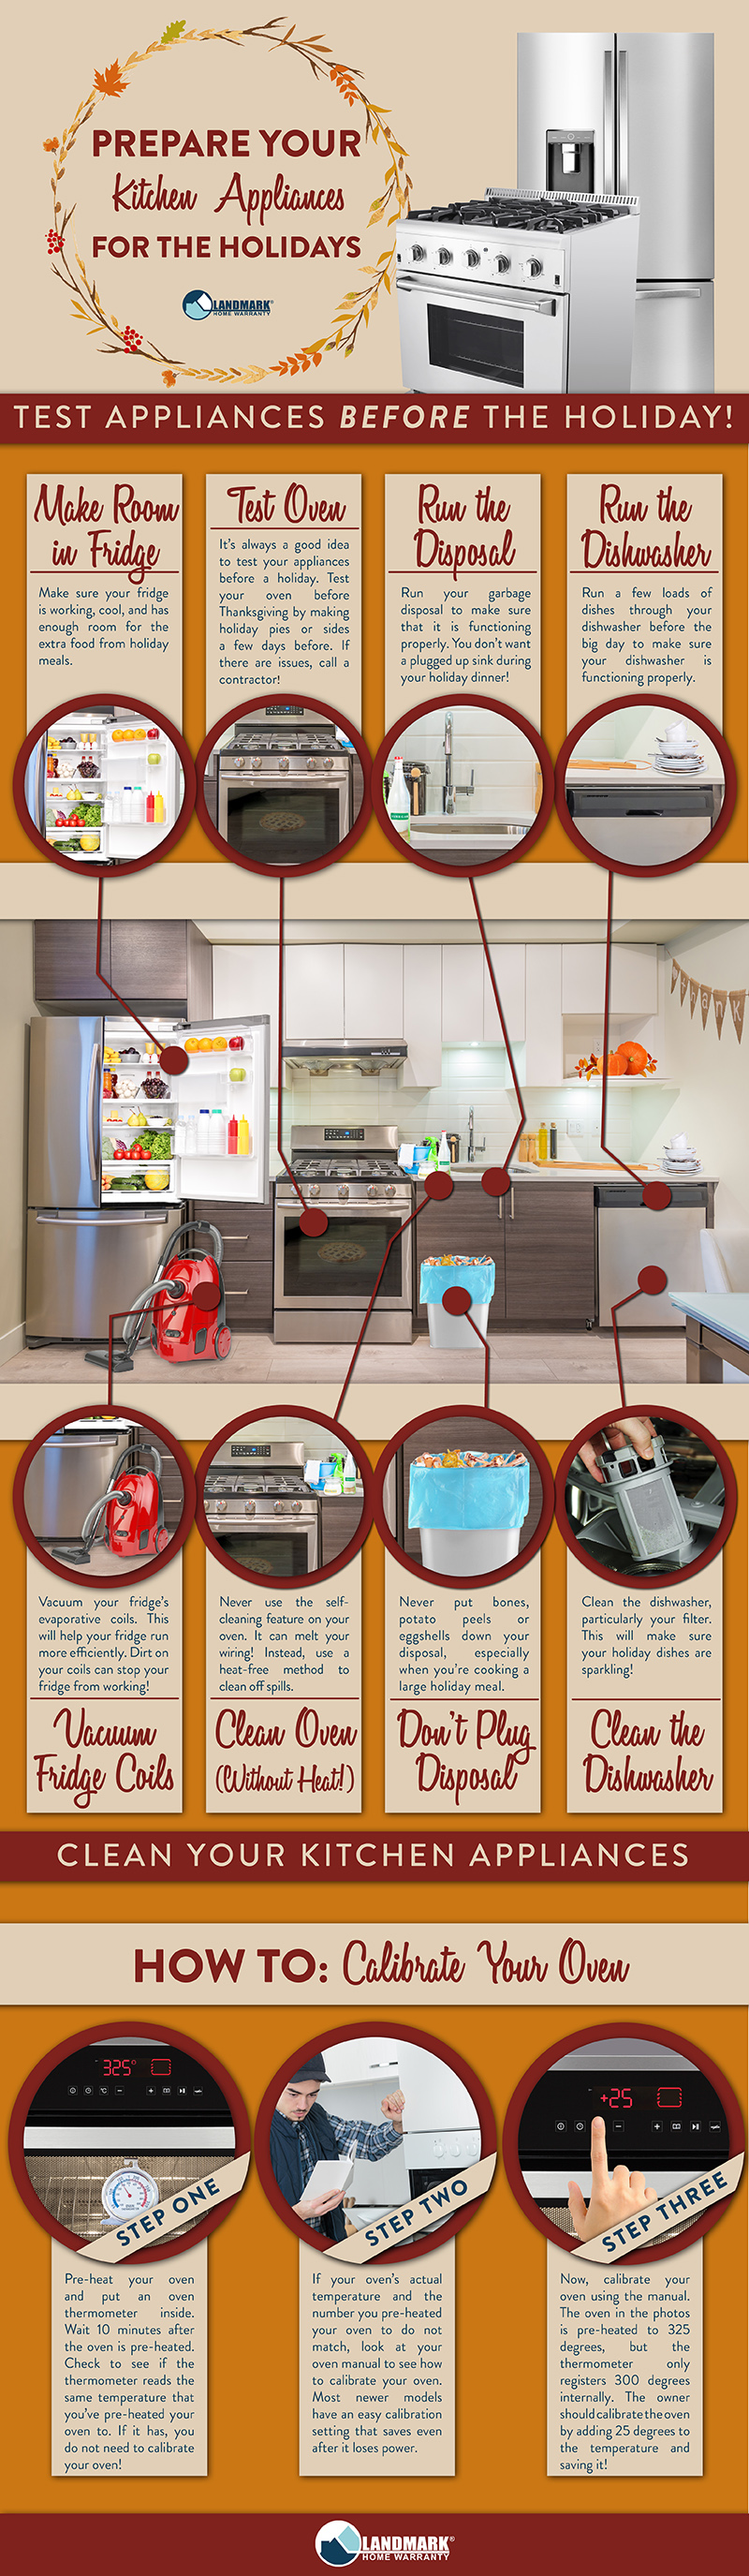 Full infographic about how to prepare your kitchen appliances for the holiday season.